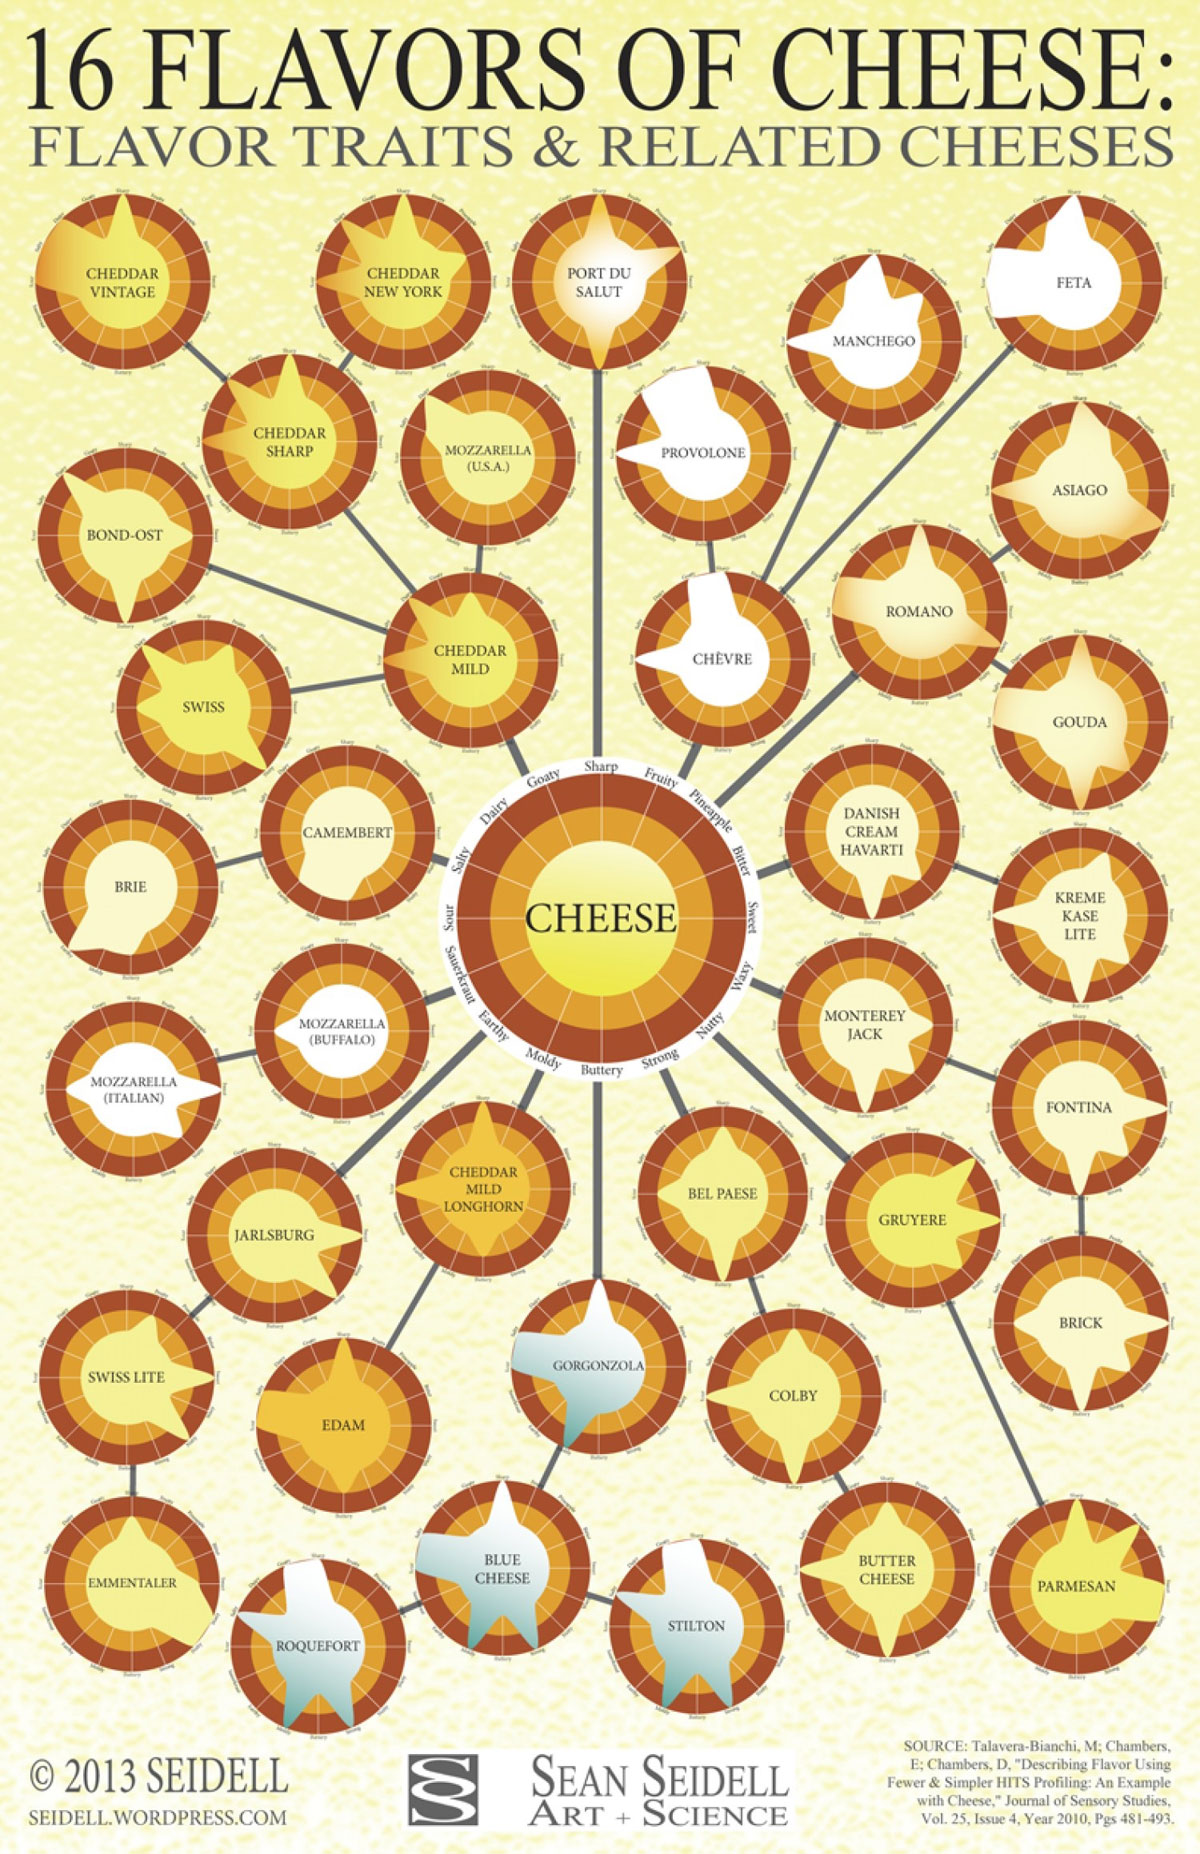 cheese-flavors-and-related-traits by sean seidell